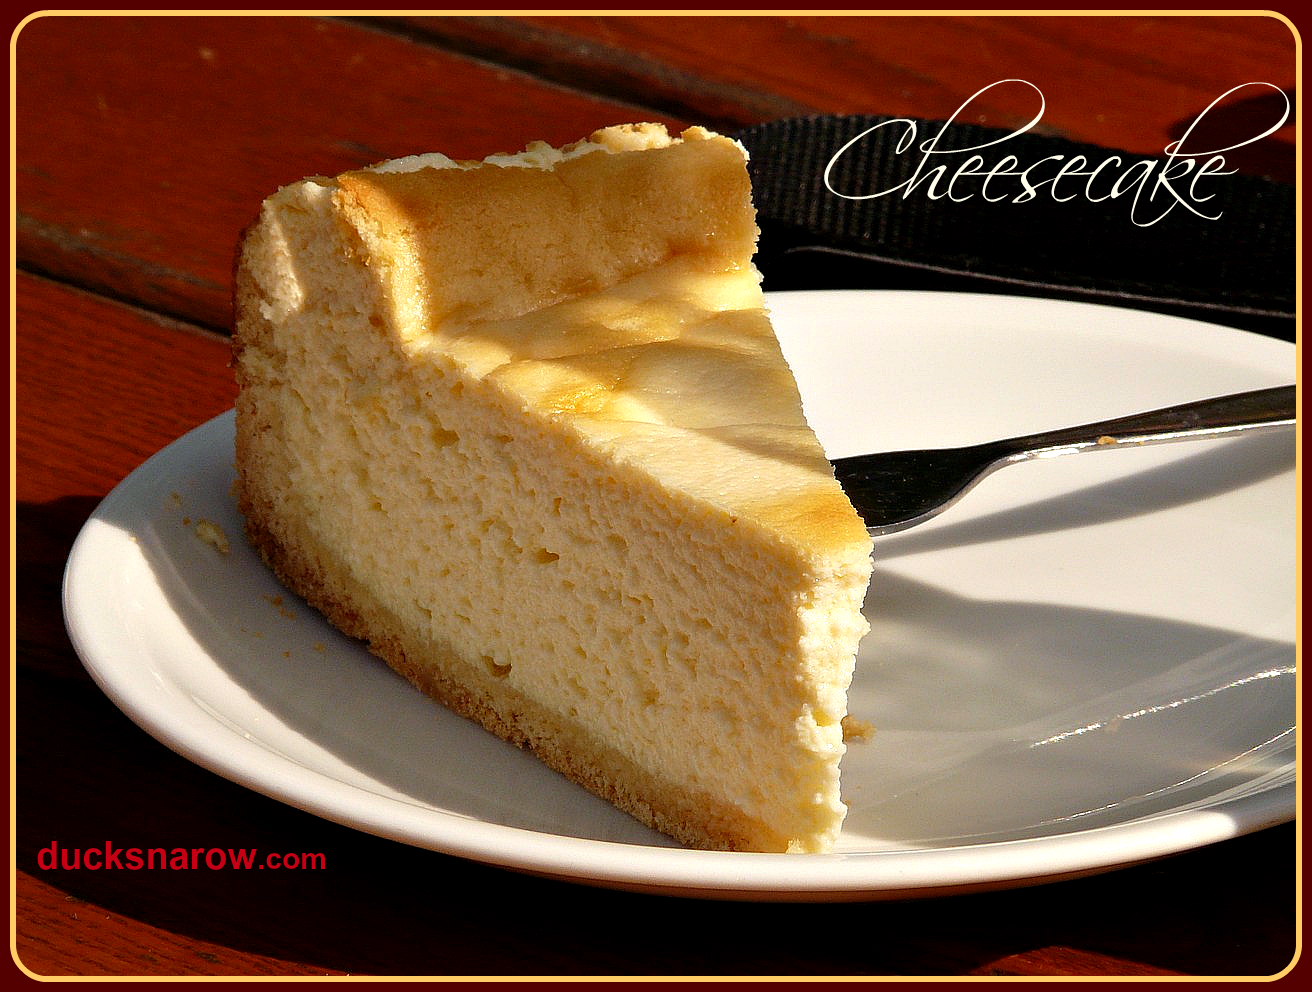 Classic Cheesecake Recipe - Ducks 'n a Row